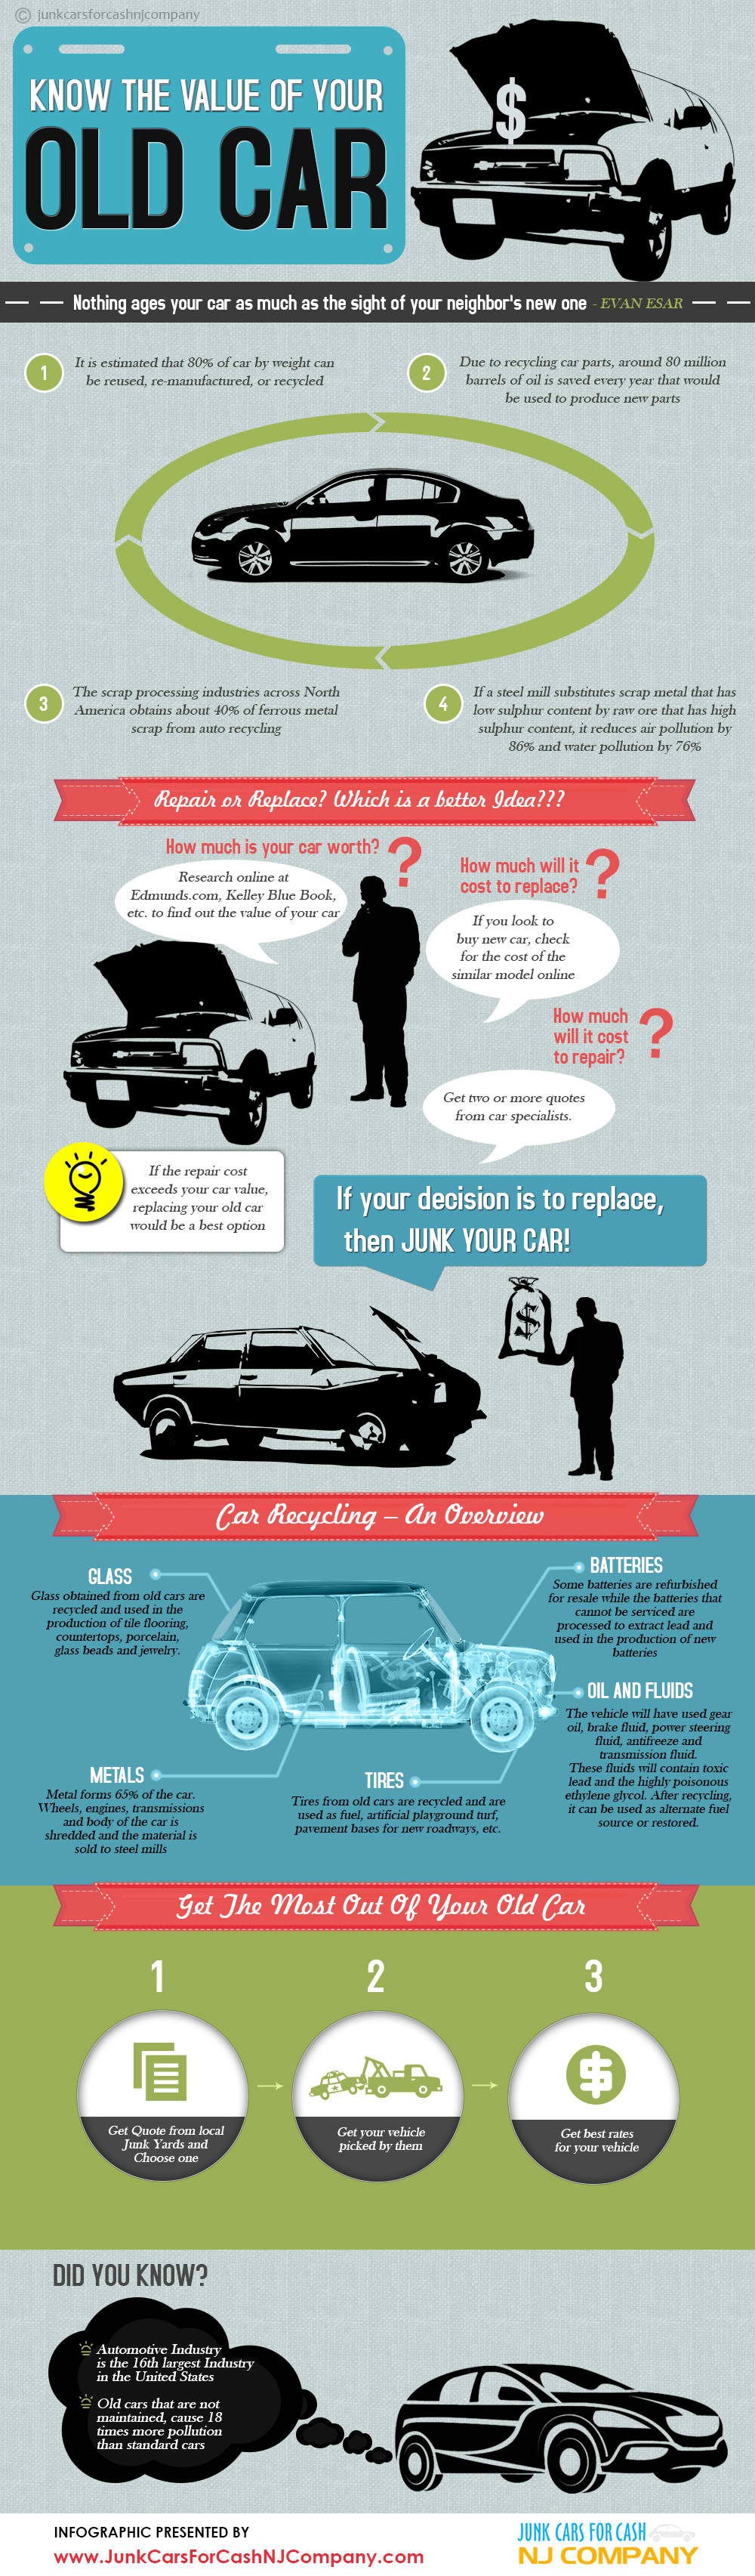 Know the value of your old car | Business | Pinterest | Cars and ...